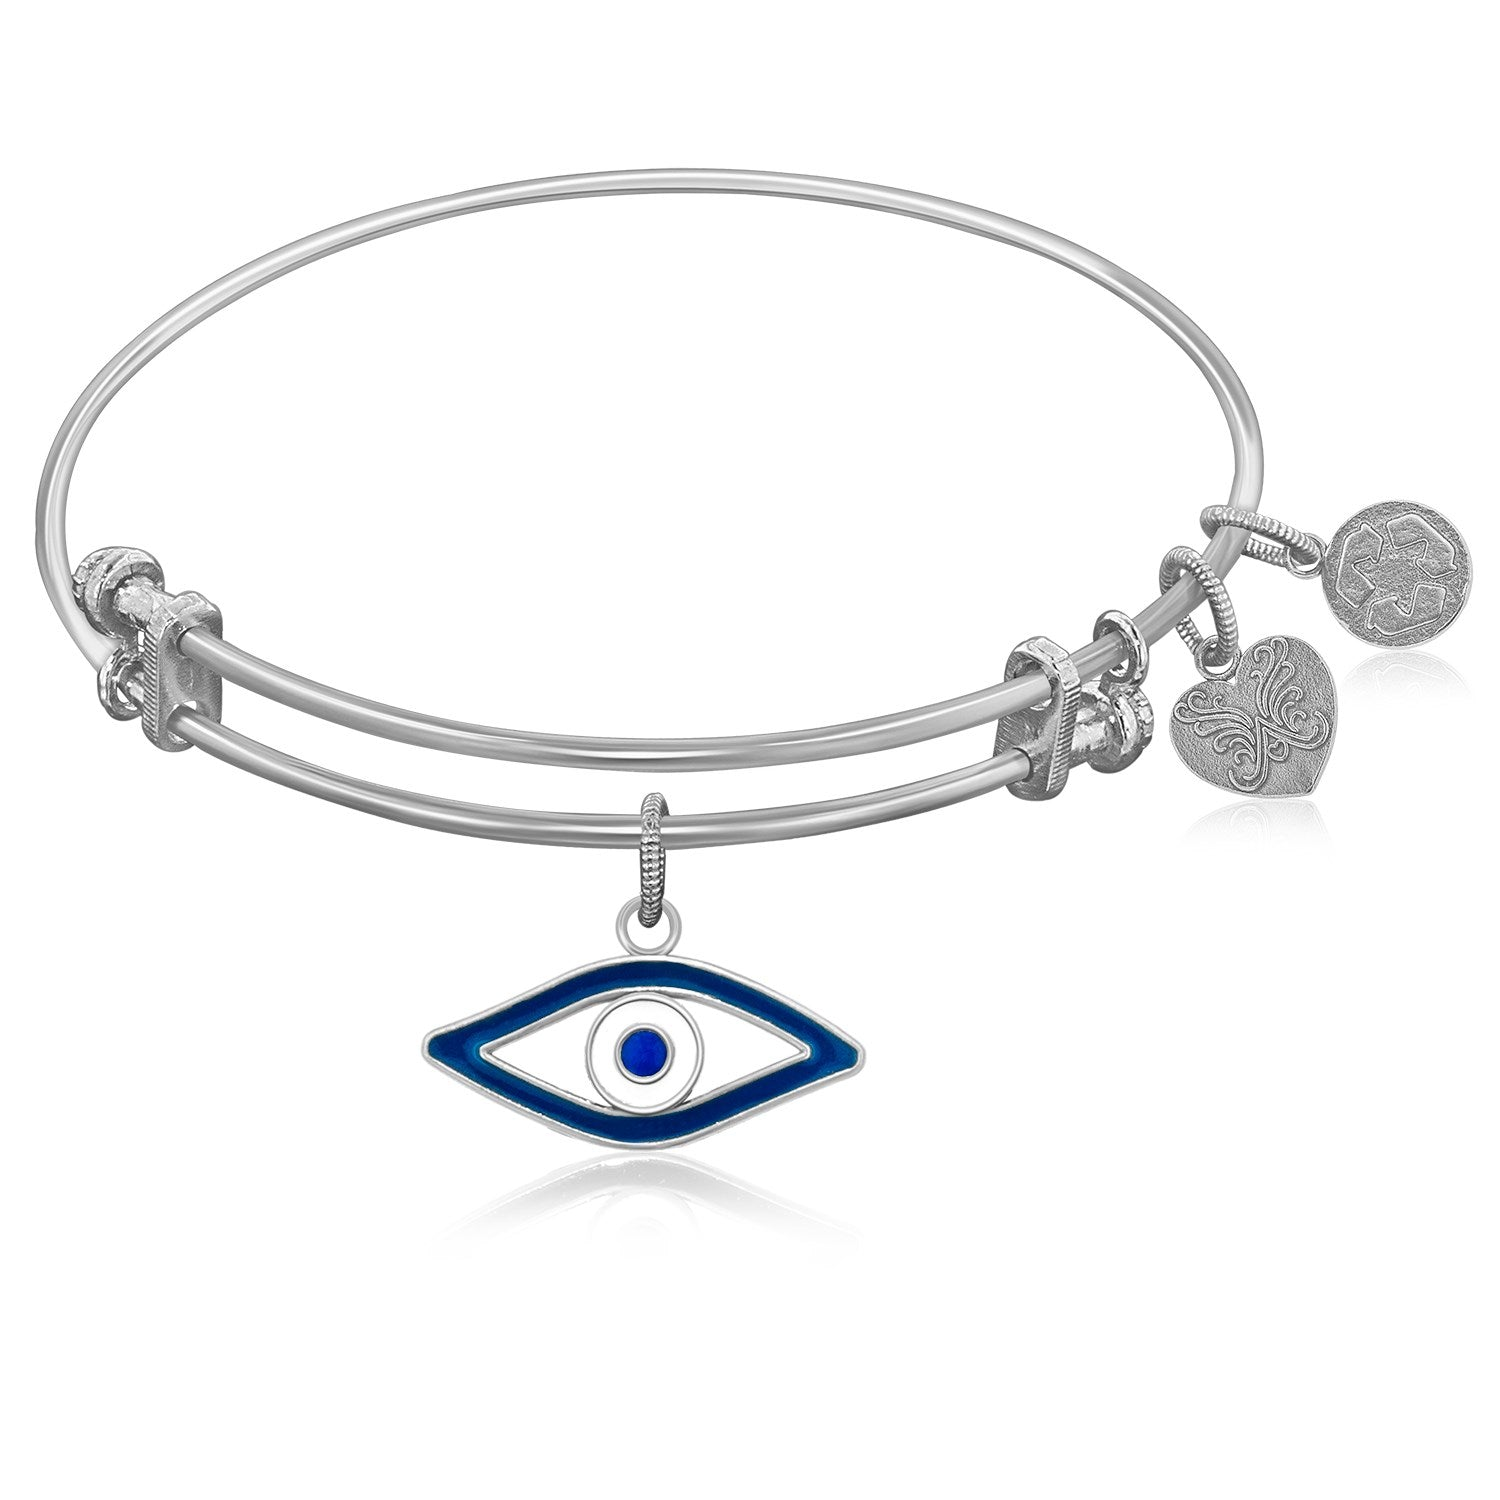 Expandable Bangle in White Tone Brass with Evil Eye Symbol